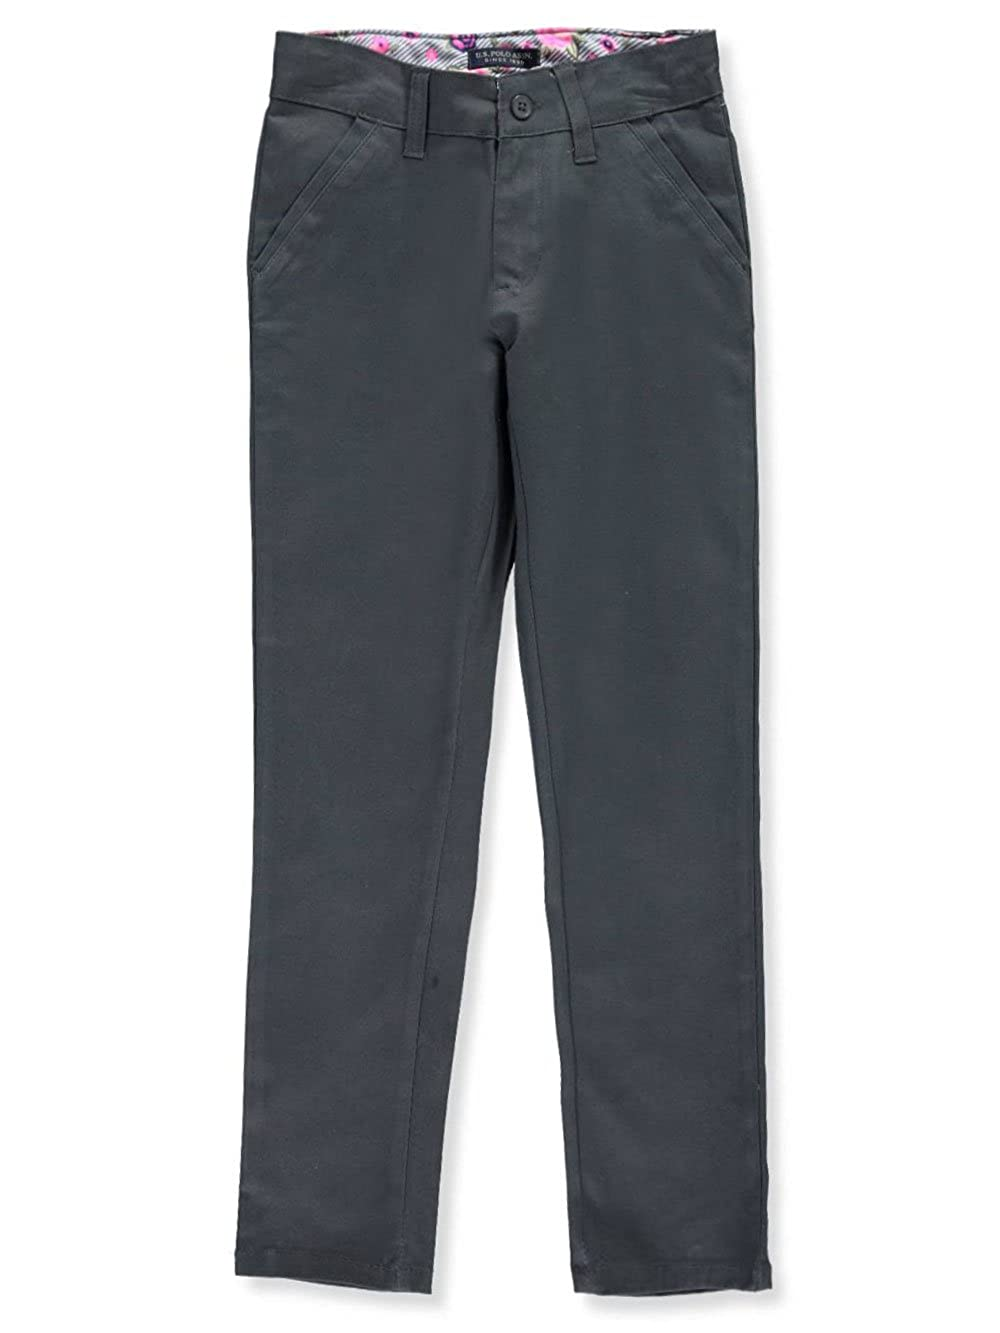 U.S. Polo Assn........................ Girls' Skinny Pants